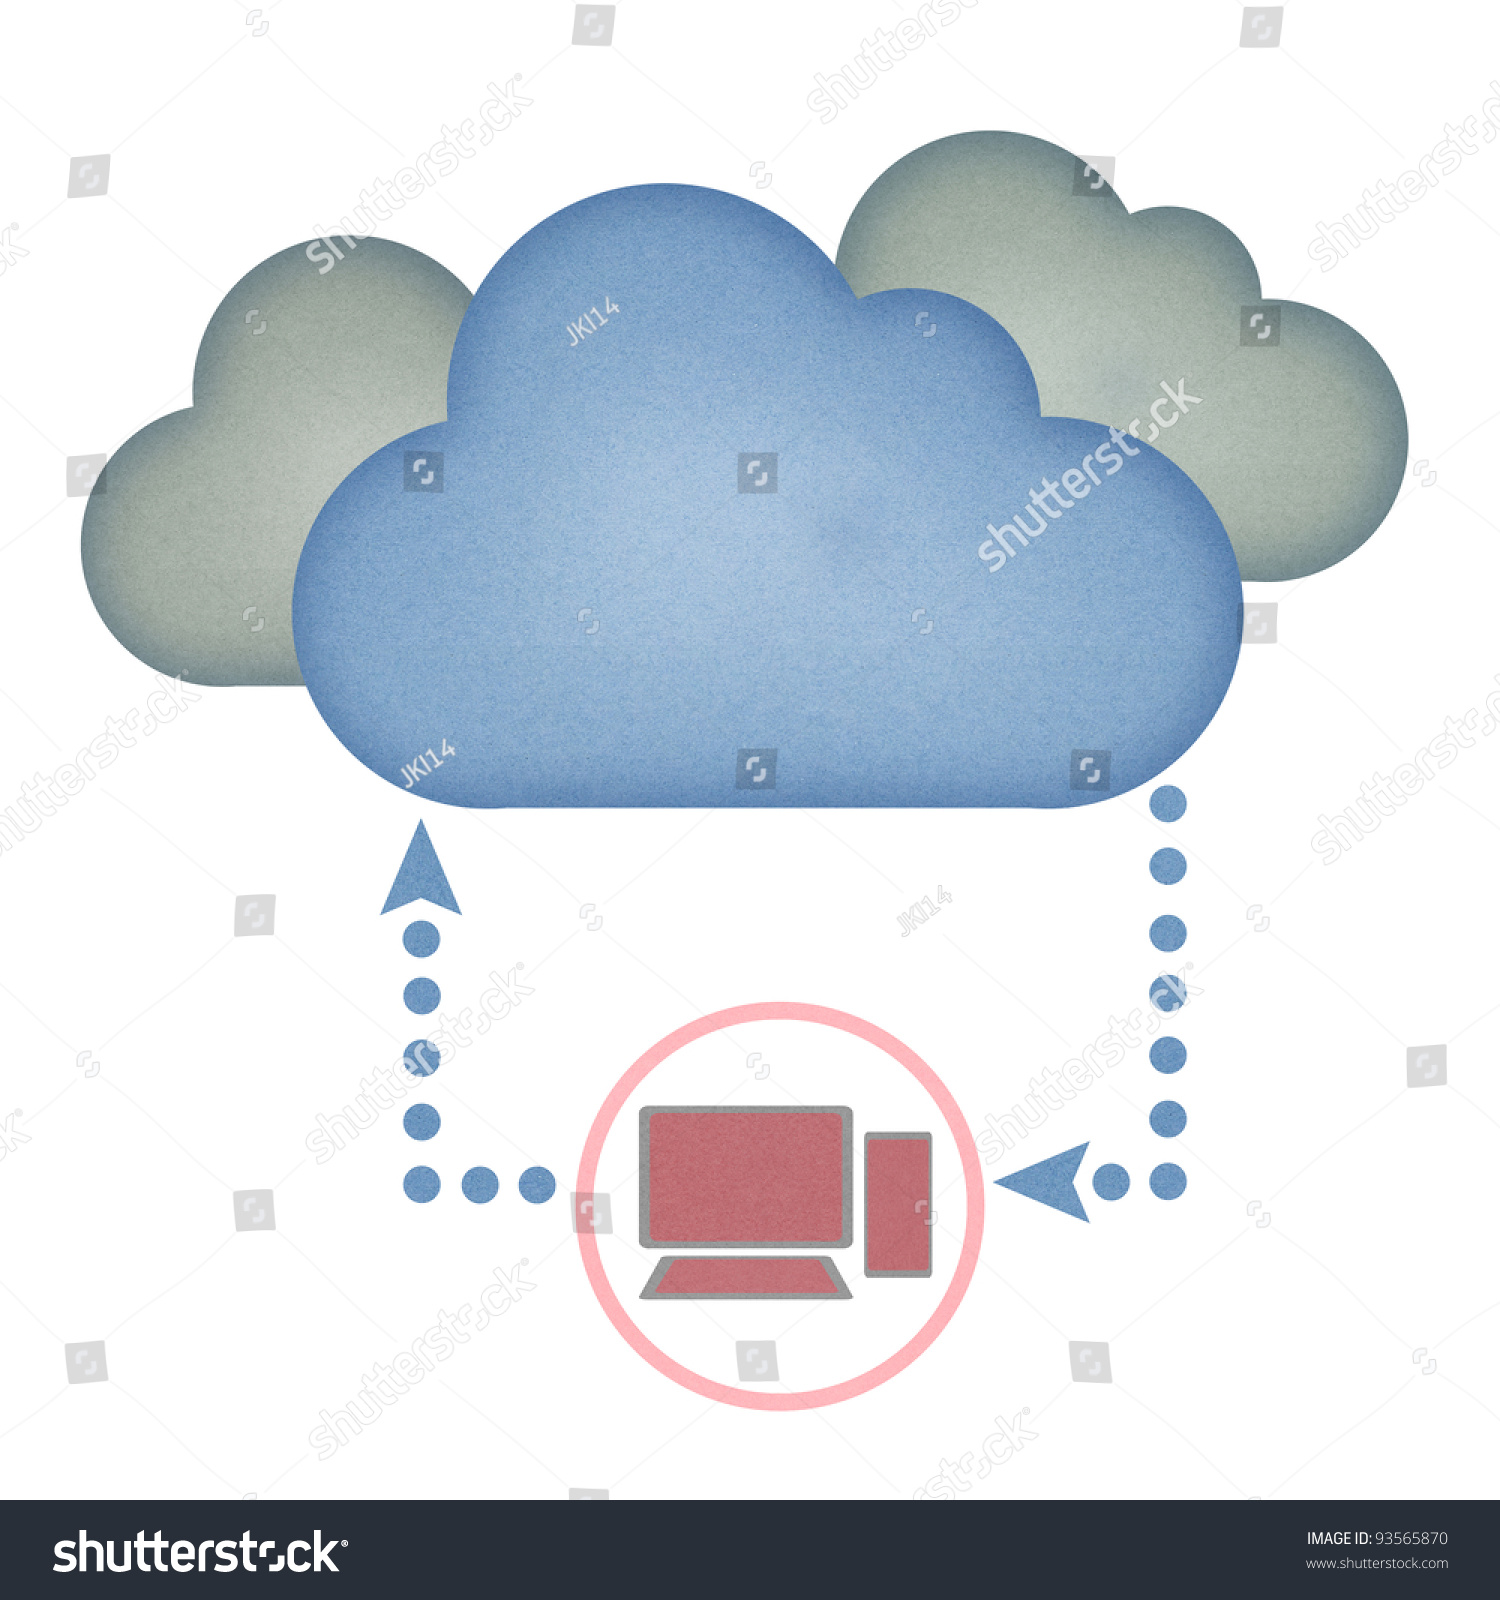 thesis papers on cloud computing View and download cloud computing essays examples also discover topics, titles, outlines, thesis statements, and conclusions for your cloud computing essay.